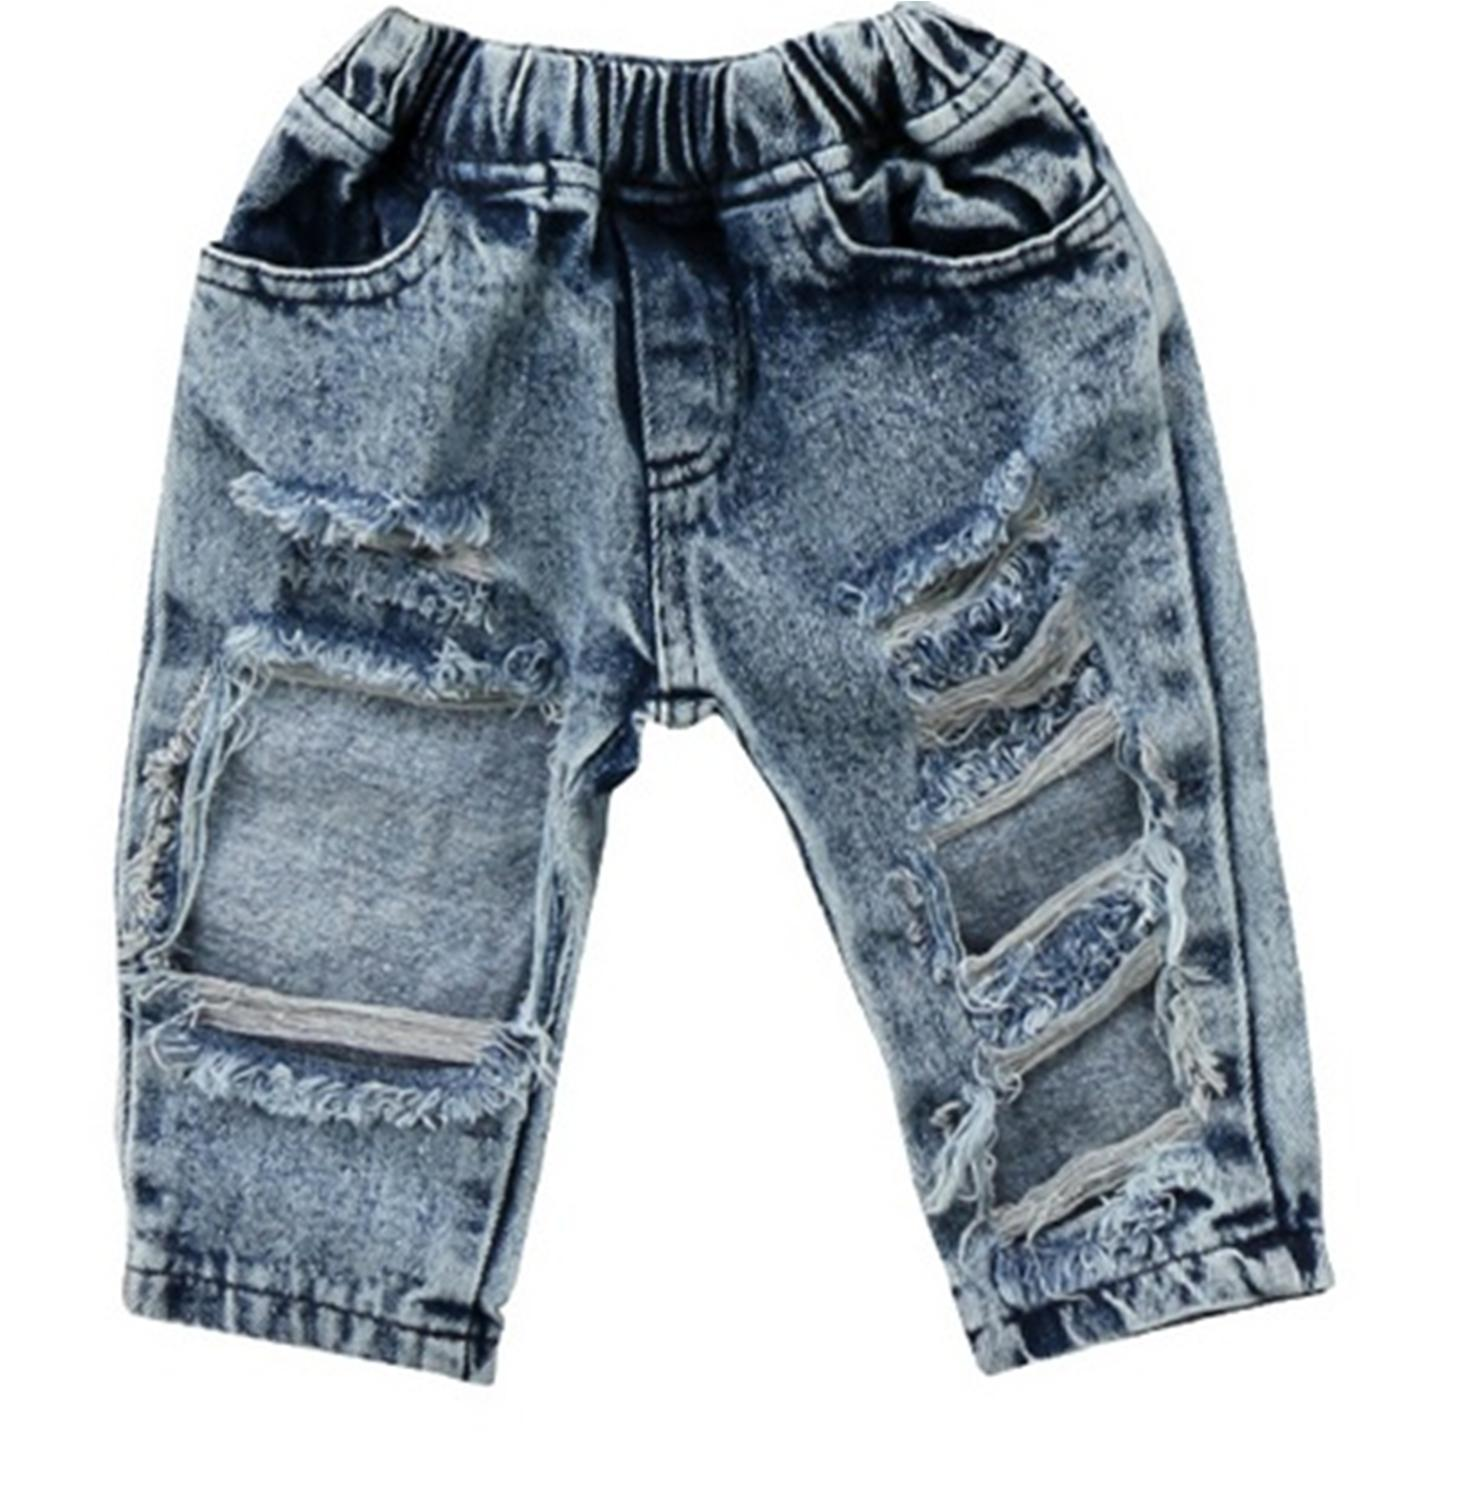 New Baby Kid Girls Summer Casual Pants Long Denim Jeans Ripped Patch Fashion 1PC Girls Leggings